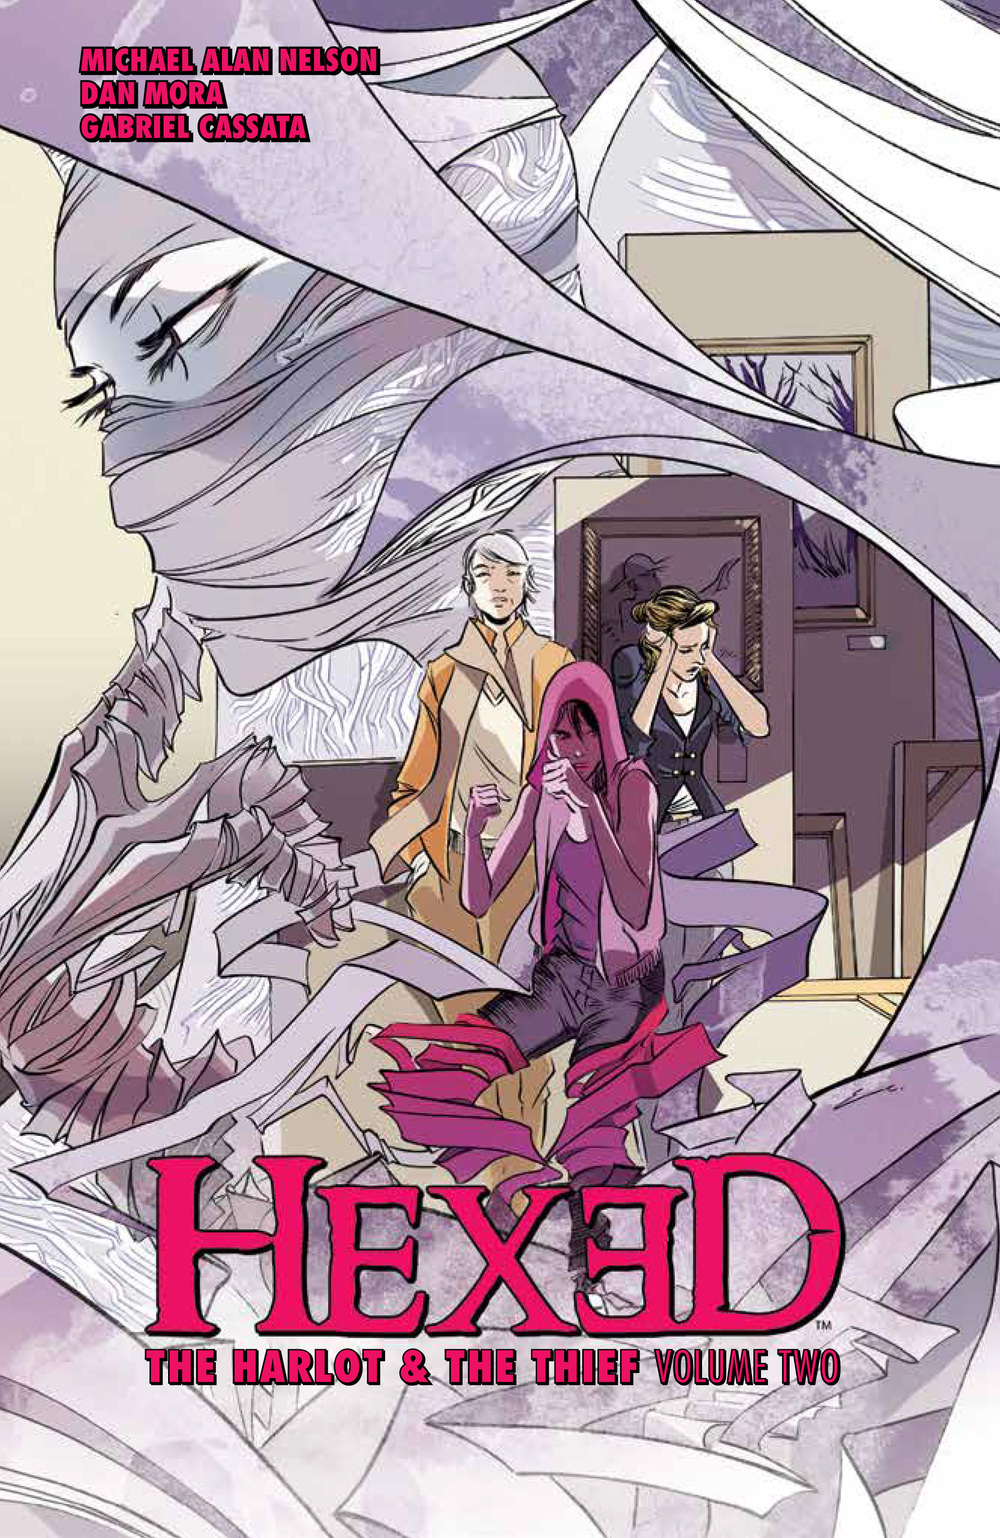 Hexed_HarlotAndThief_v2_TP_cover.jpg